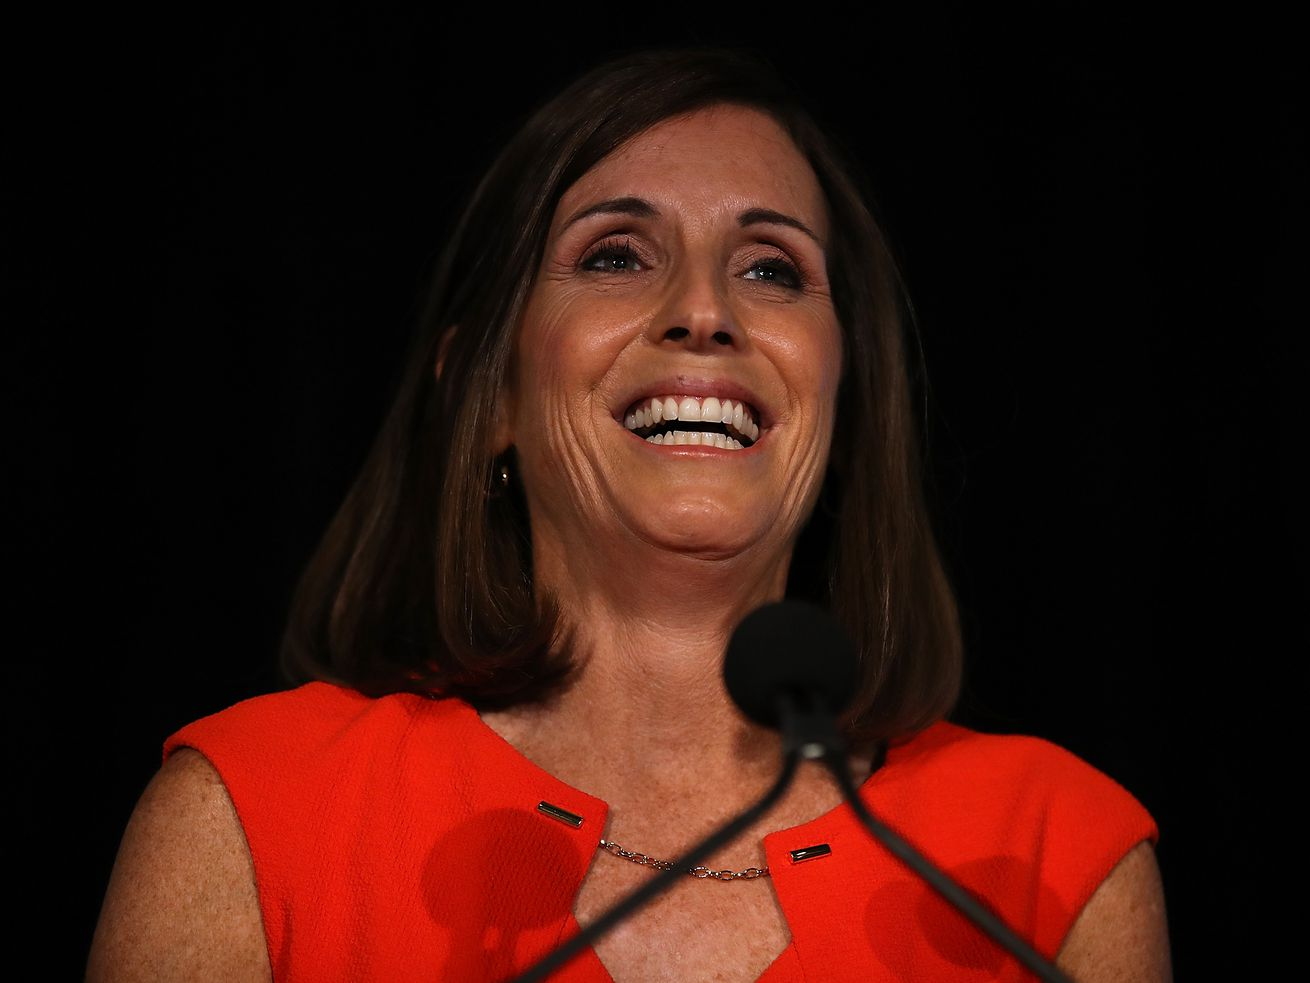 Rep. Martha McSally speaks during an event in Tempe, Arizona.